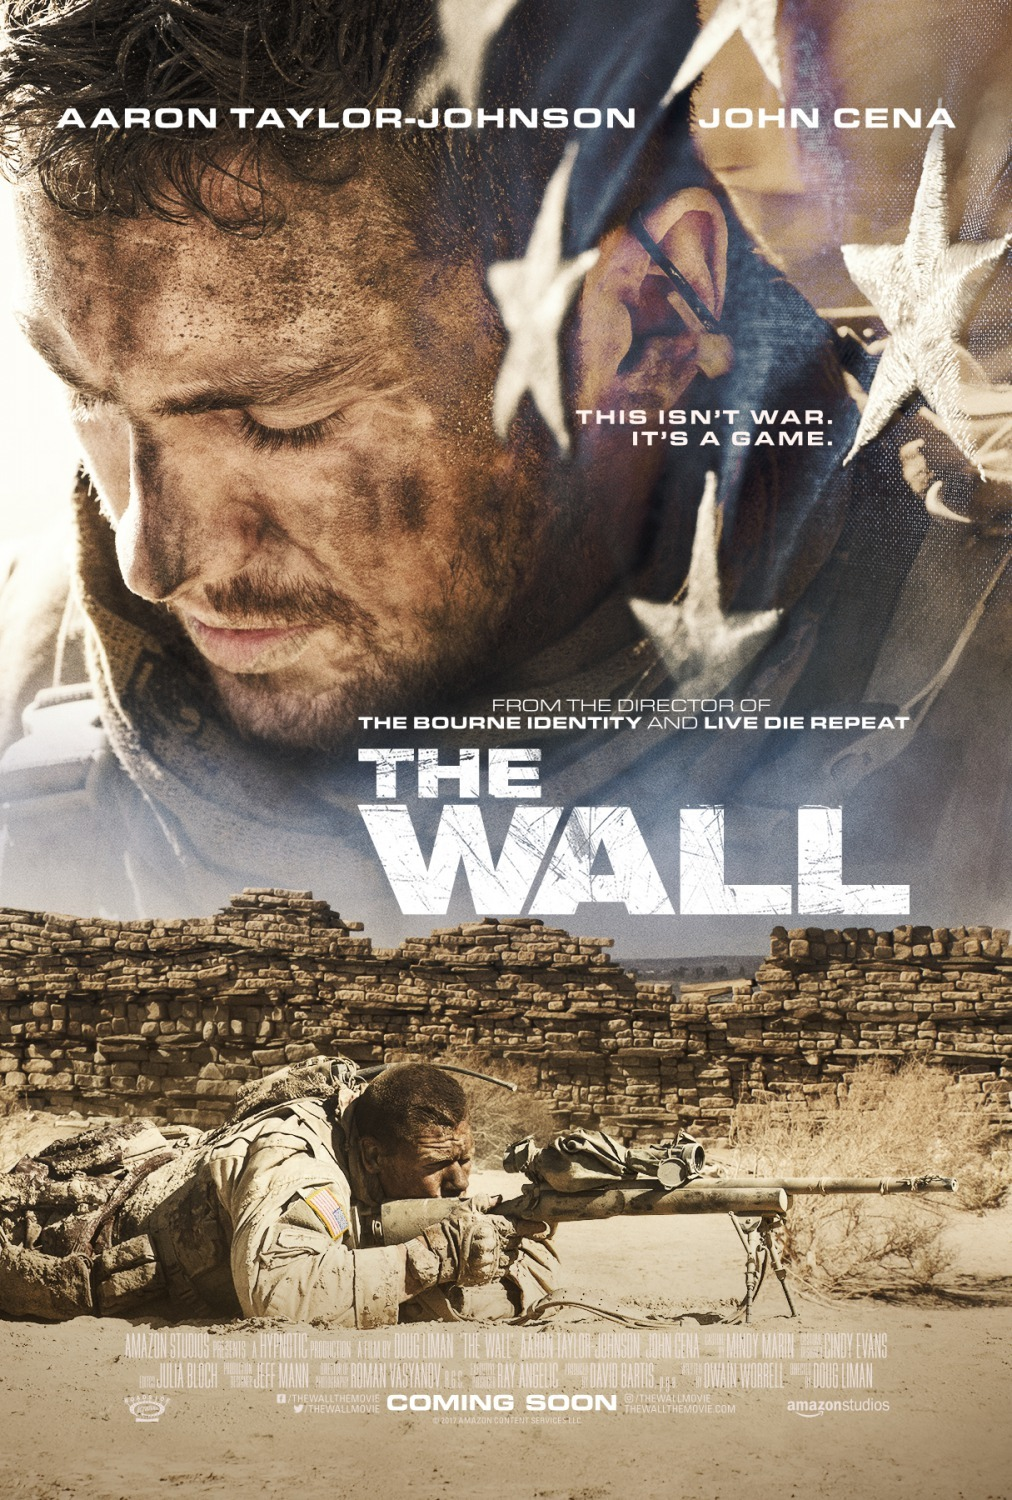 SIENA (2017) / THE WALL